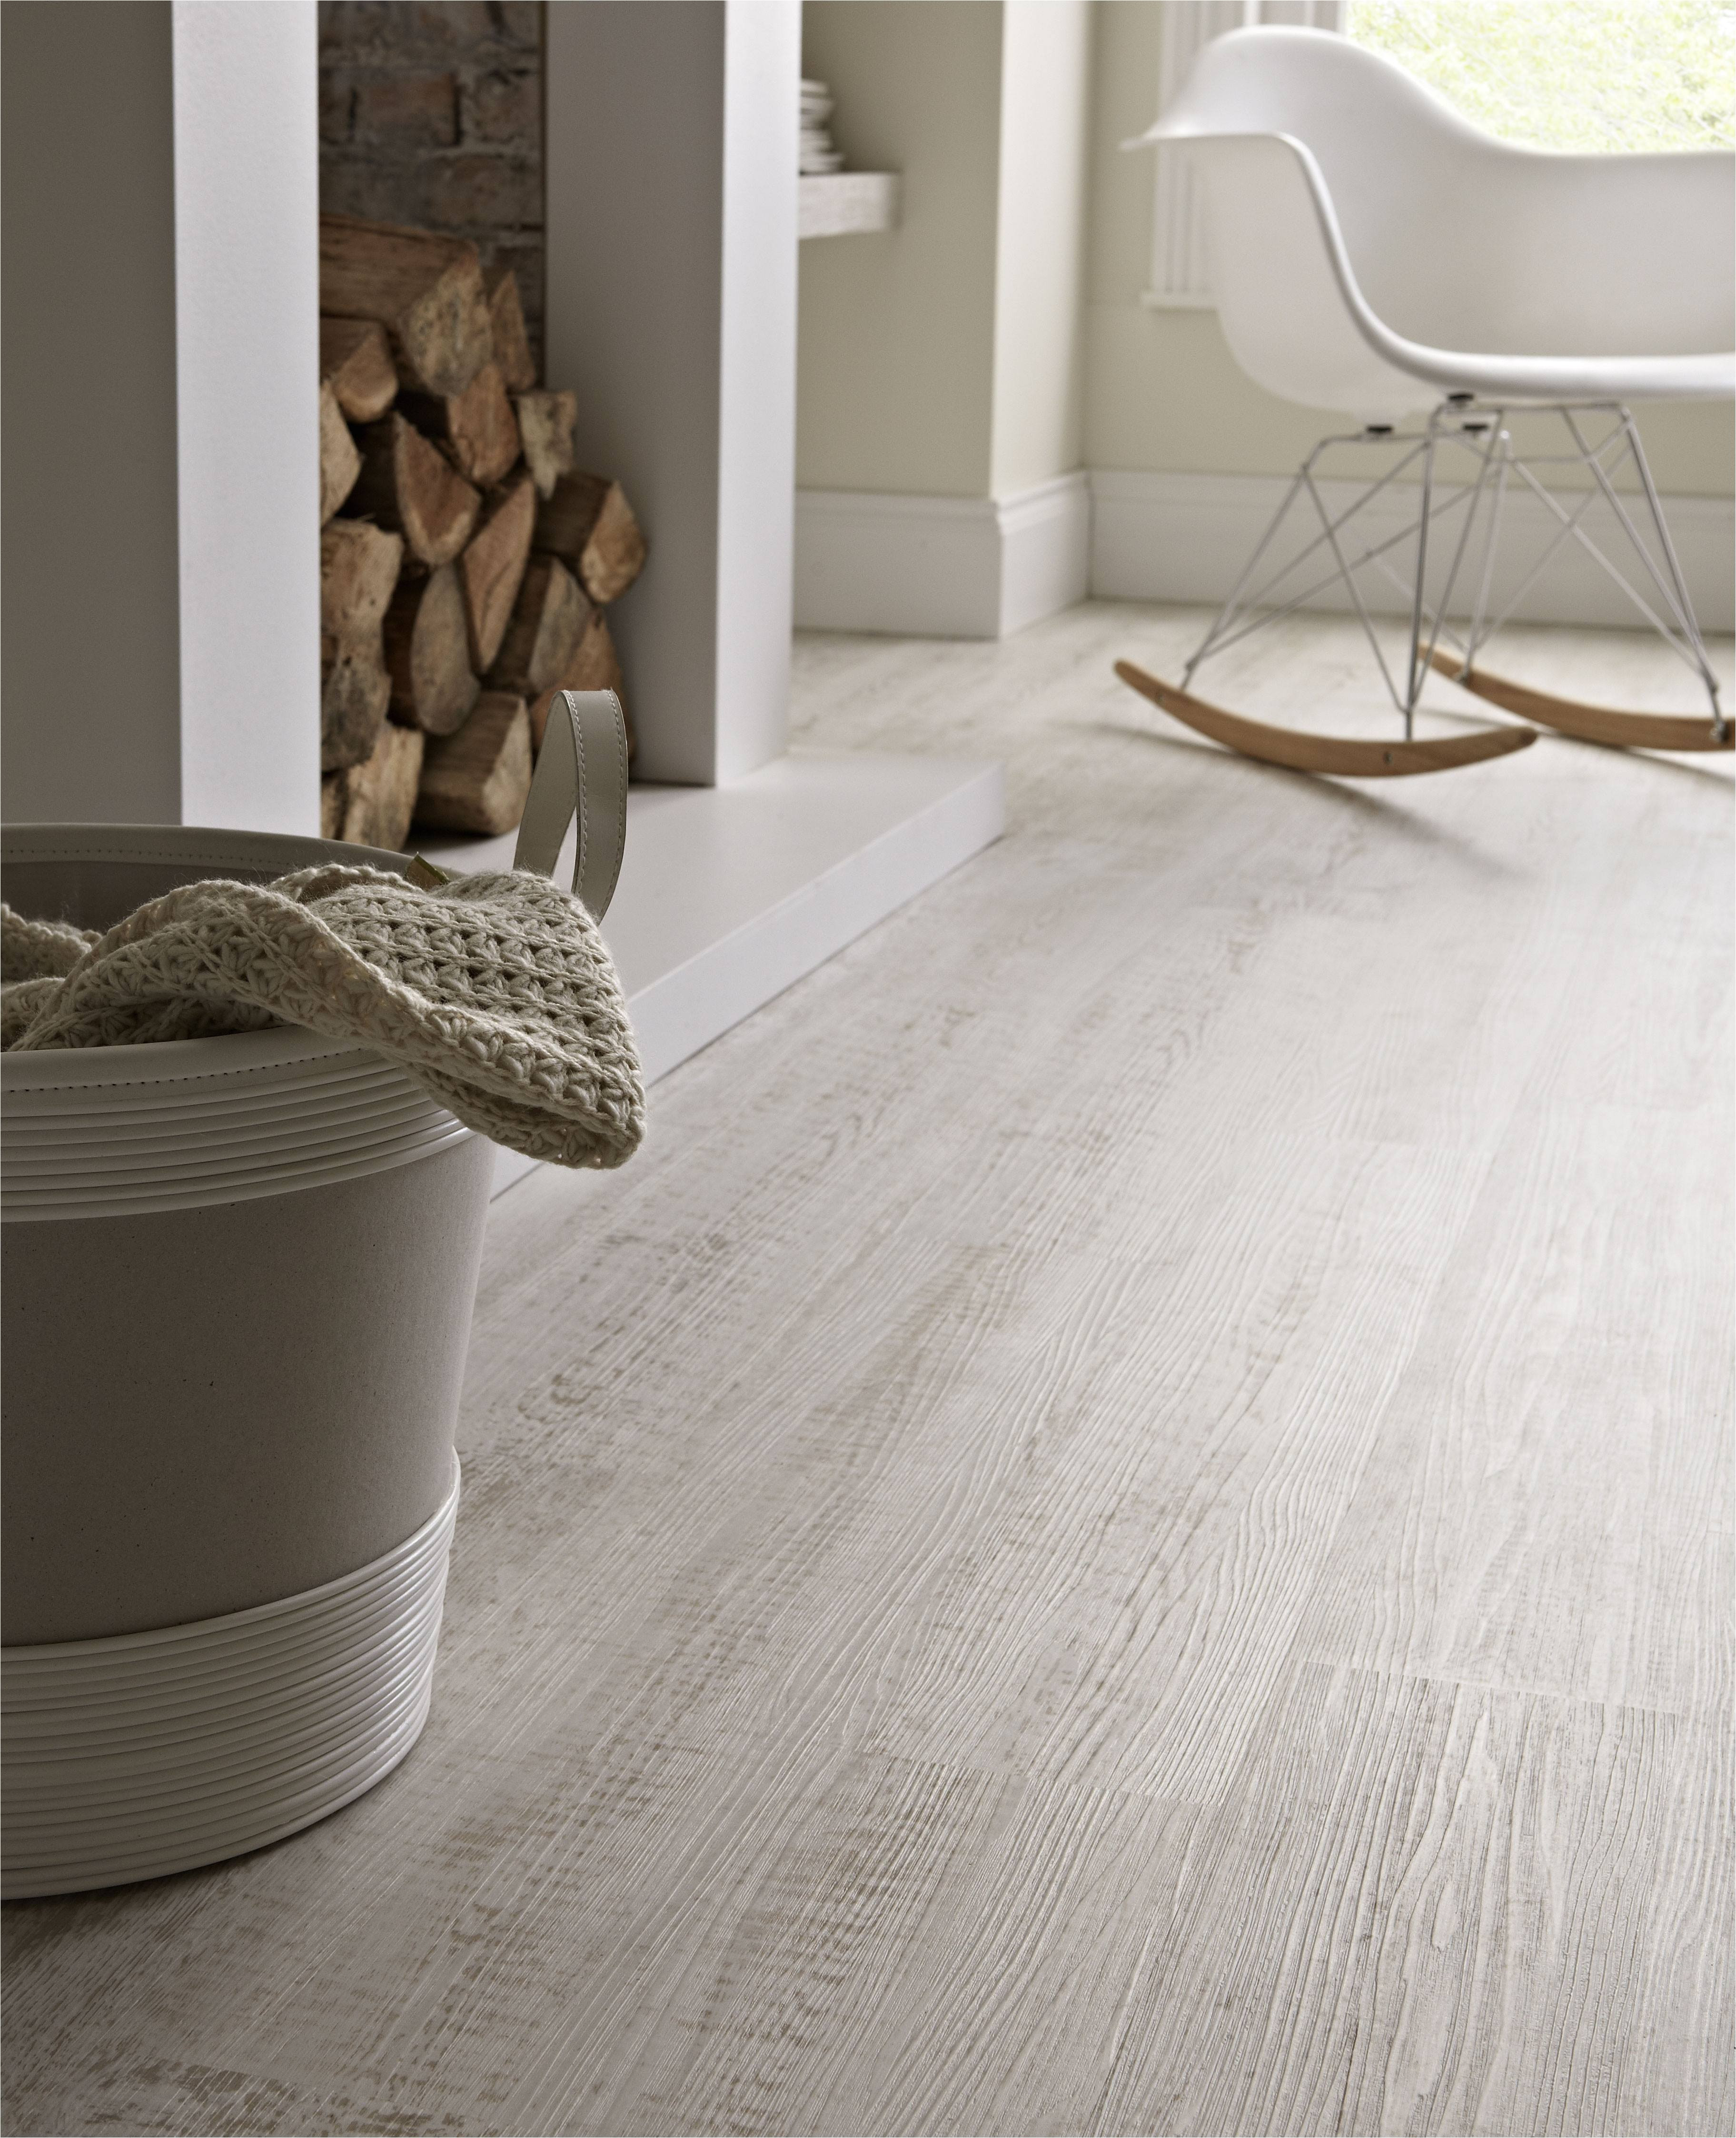 12 Stylish Grey Maple Hardwood Floors 2021 free download grey maple hardwood floors of more what is engineered hardwood flooring amazing design best throughout wood floor with gaps between boards 1500 x 1000 56a49eb25f9b58b7d0d7df8d